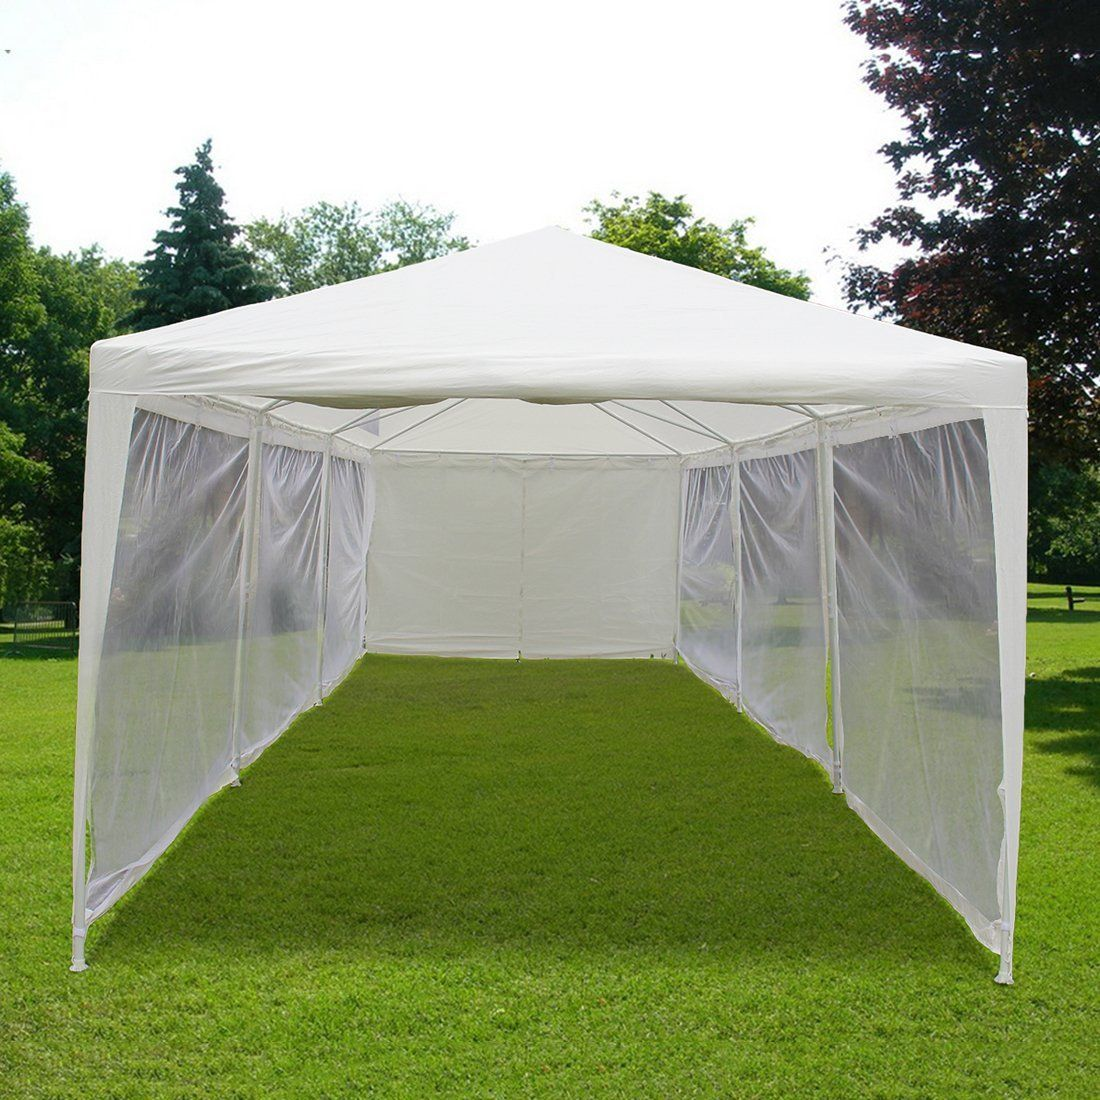 Amazon.com  Quictent 10u0027x30u0027 Outdoor Canopy Gazebo Party Wedding tent Screen & Amazon.com : Quictent 10u0027x30u0027 Outdoor Canopy Gazebo Party Wedding ...